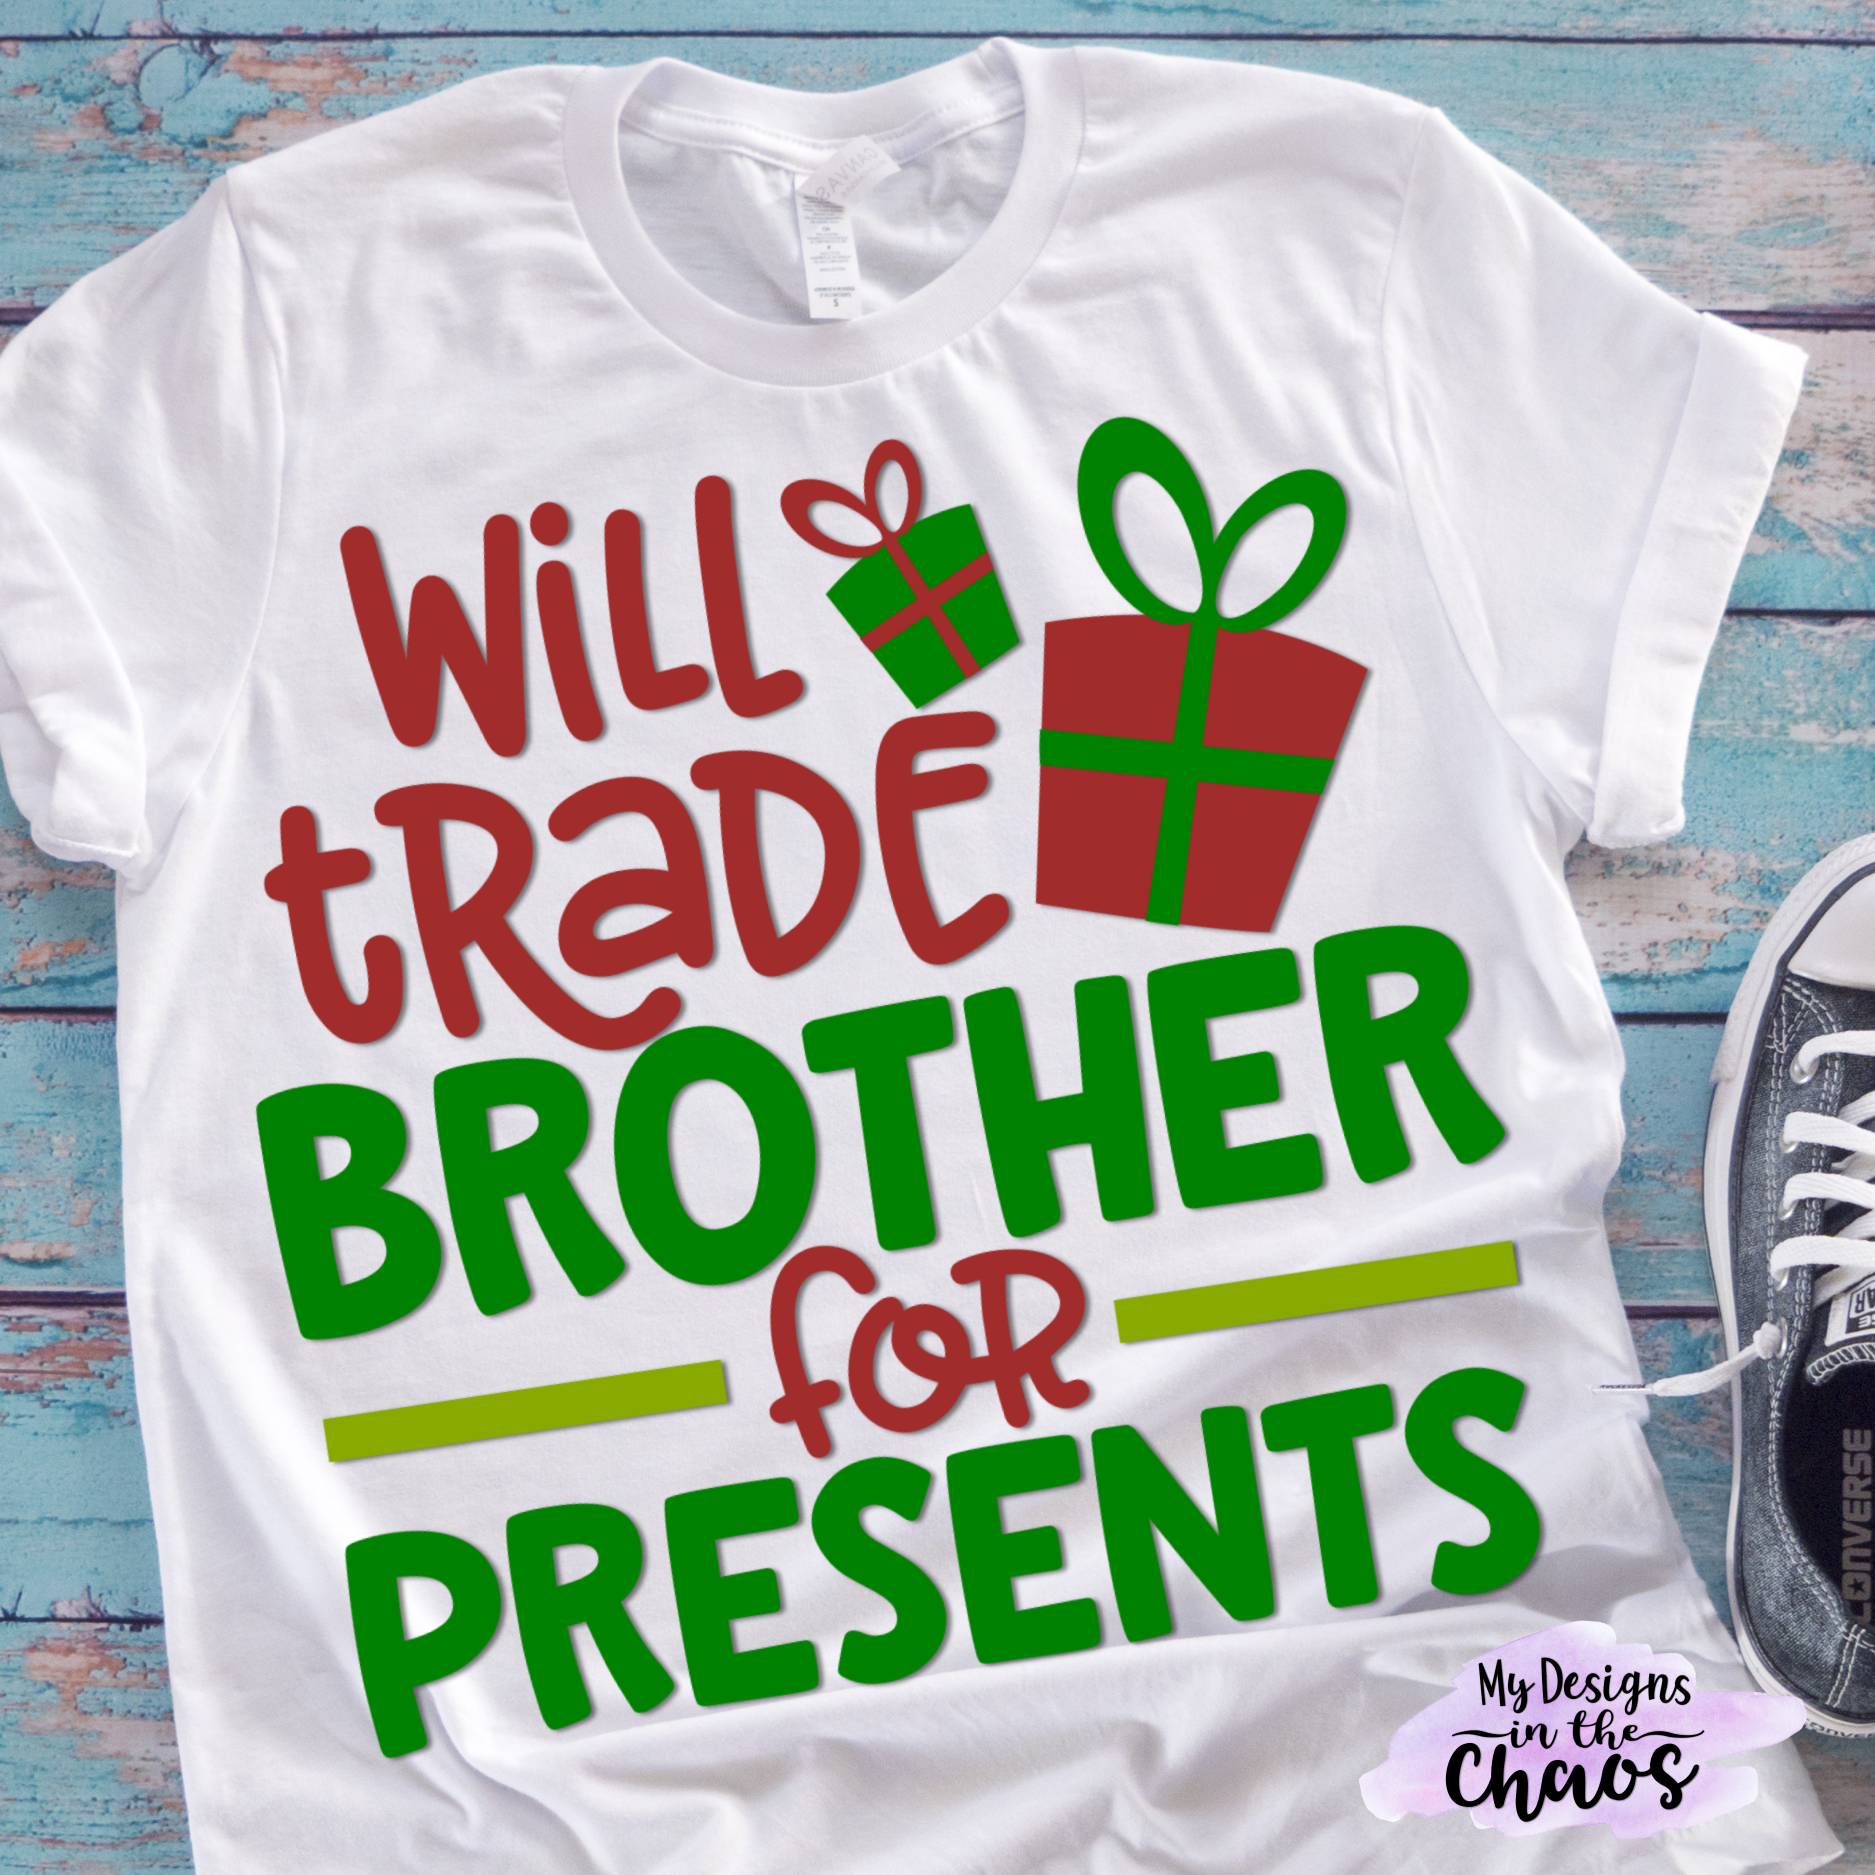 Will trade brother for presents Christmas shirts for